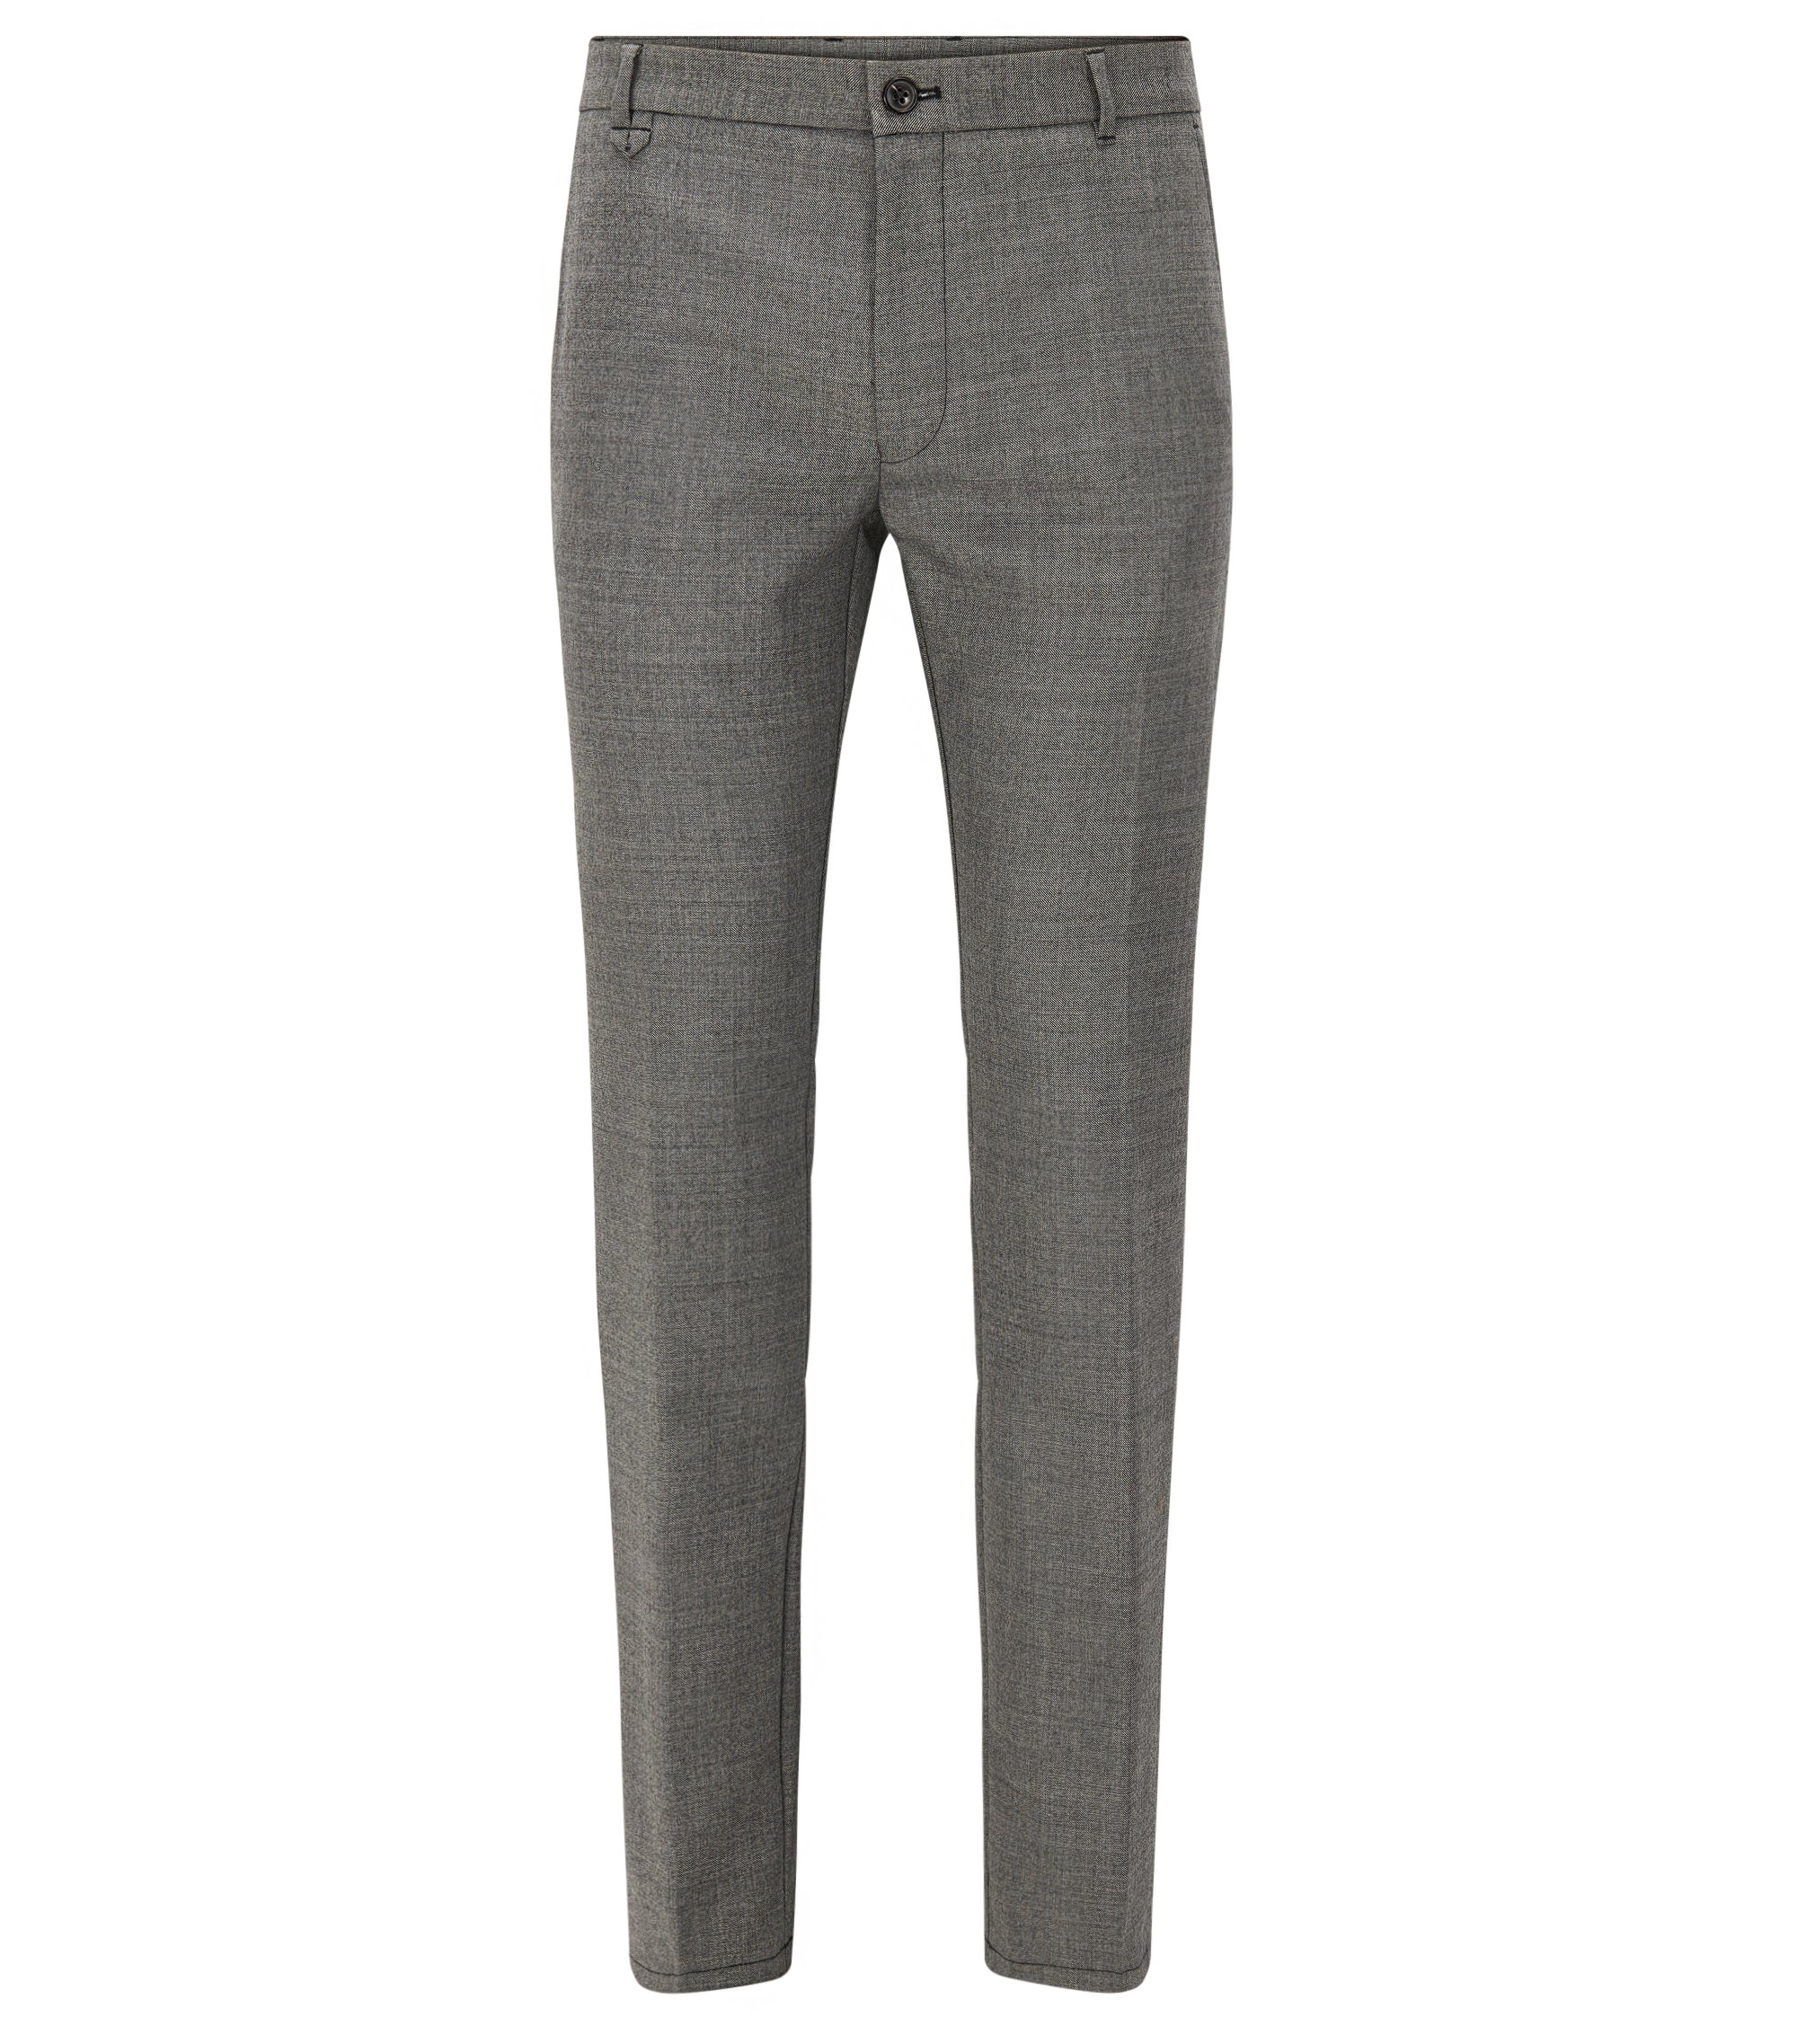 Stretch Virgin Wool Pants, Extra Slim Fit | Heldor, Grey